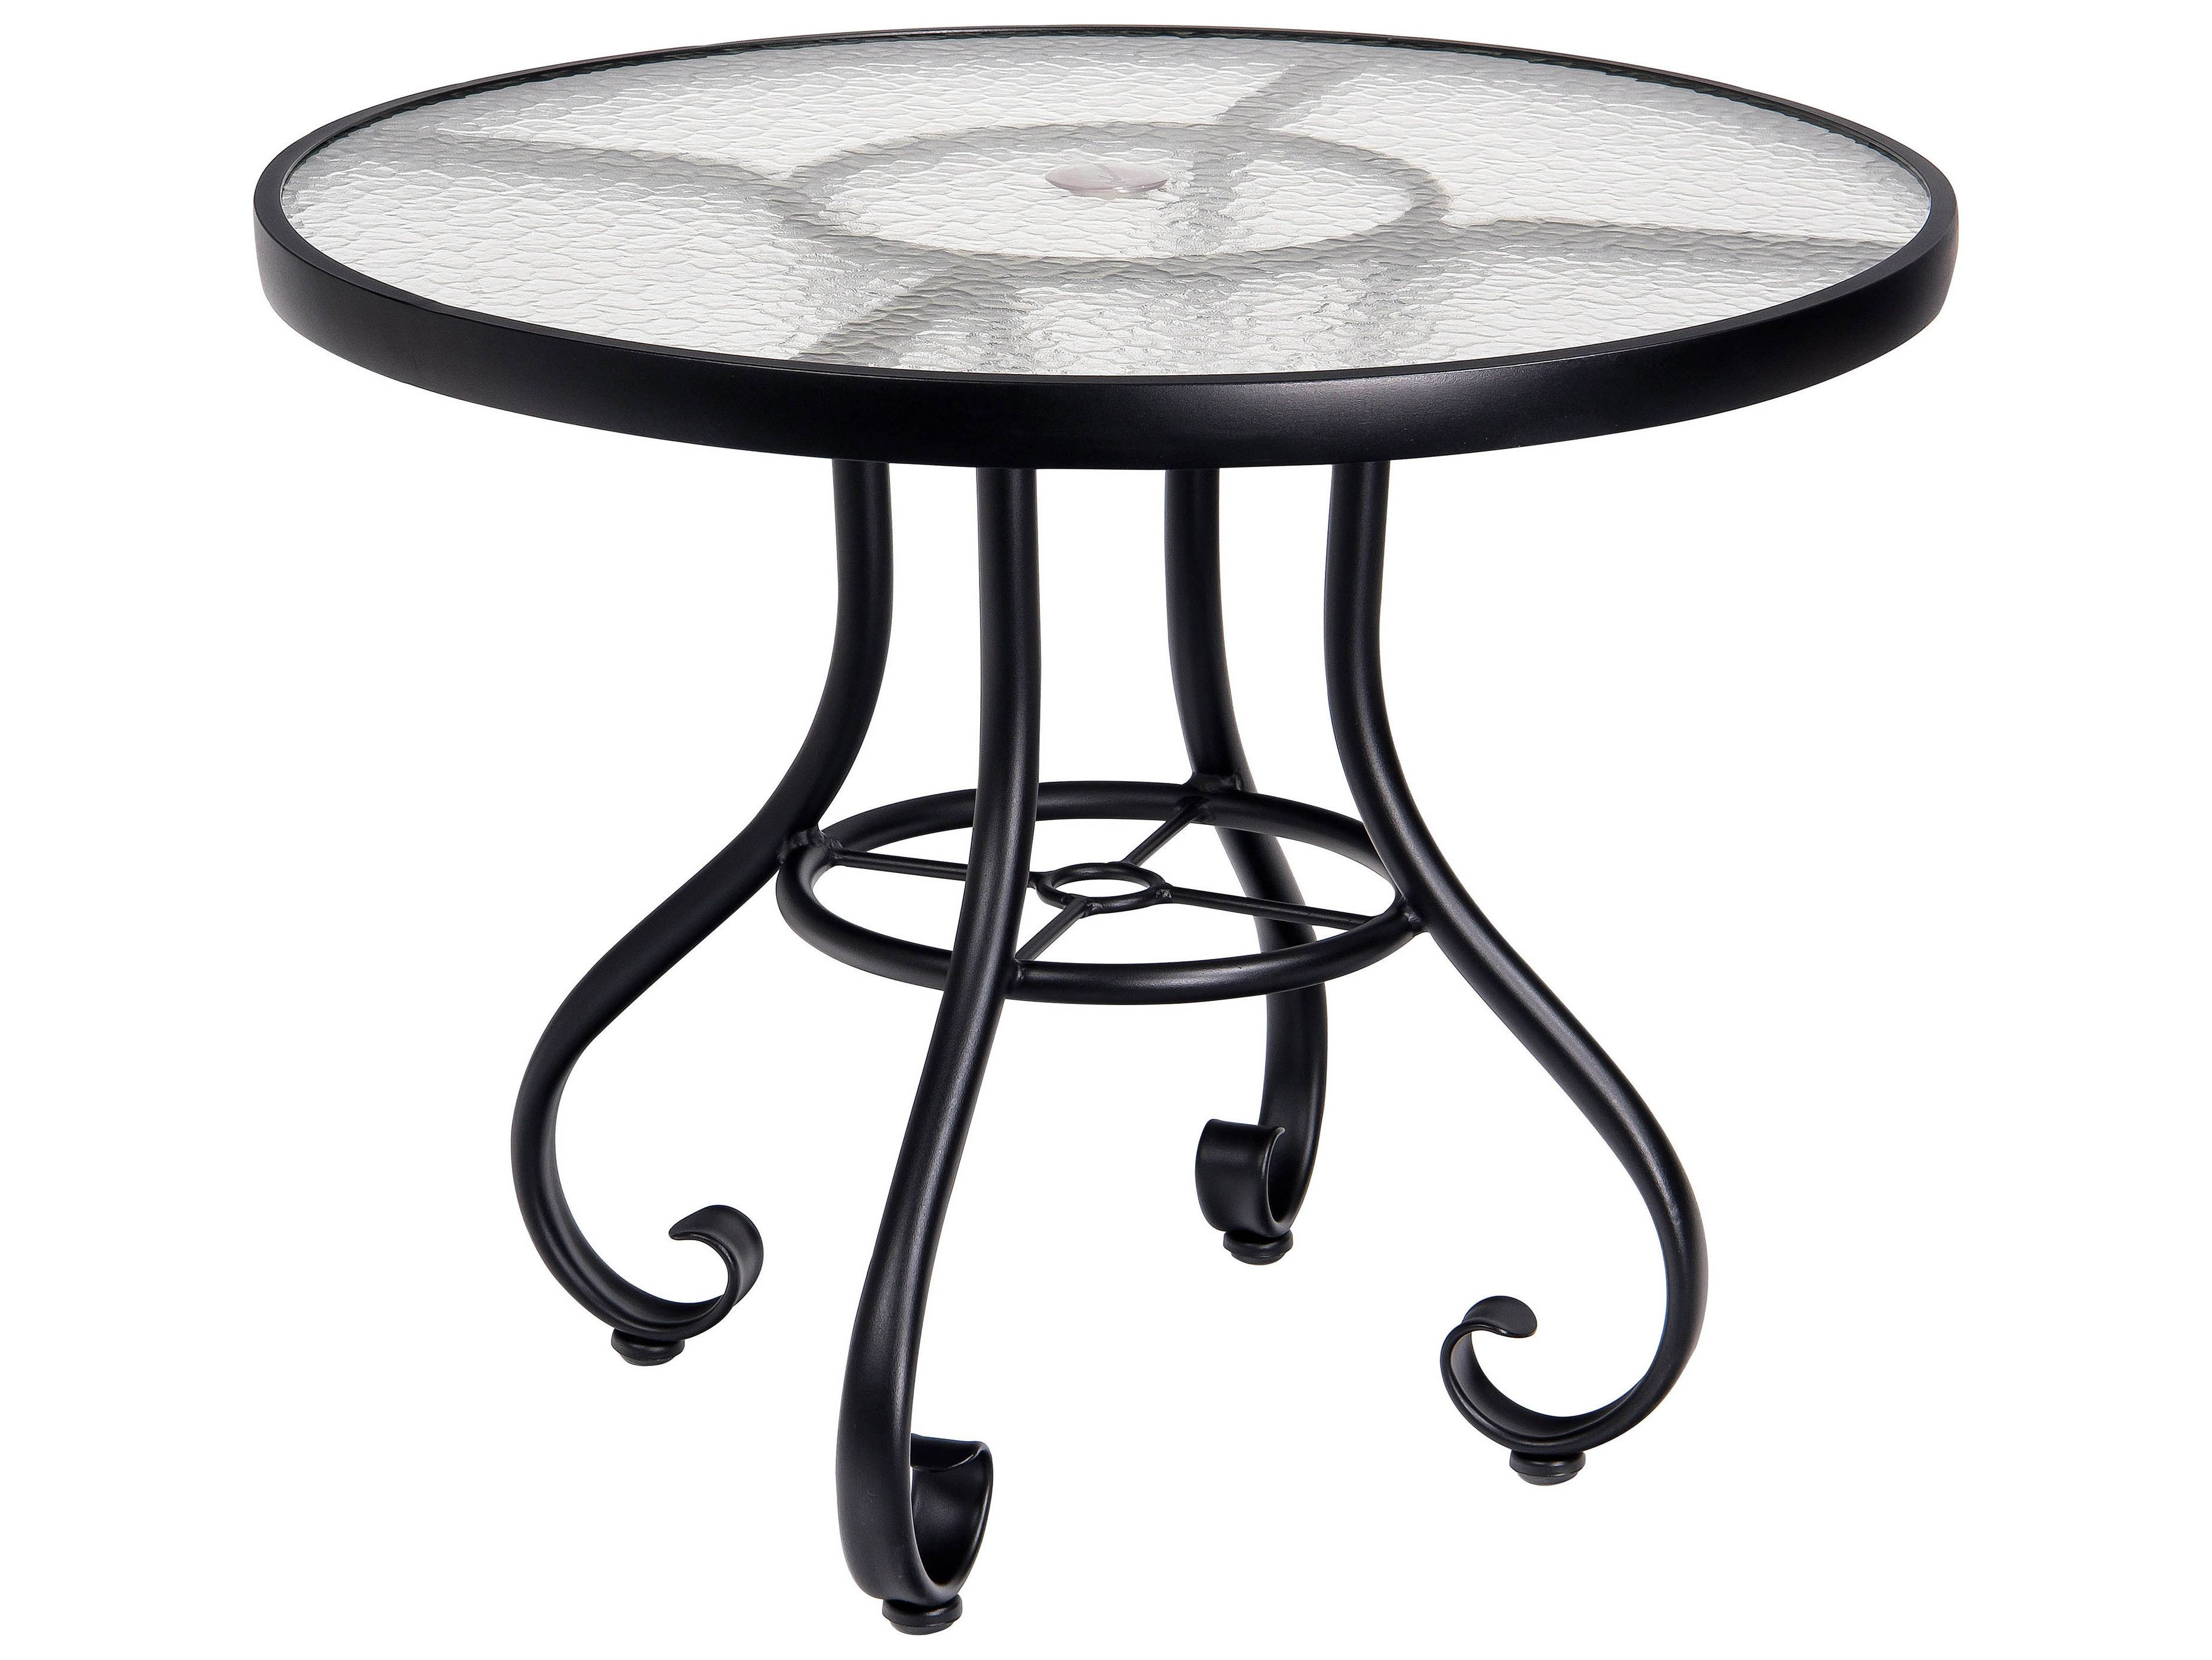 Small Round Glass Top Coffee Table Download Small Round Coffee Table Best Glass Top Coffee Ta In 2020 Round Coffee Table Circle Coffee Tables Coffee Table Square [ 1632 x 1224 Pixel ]